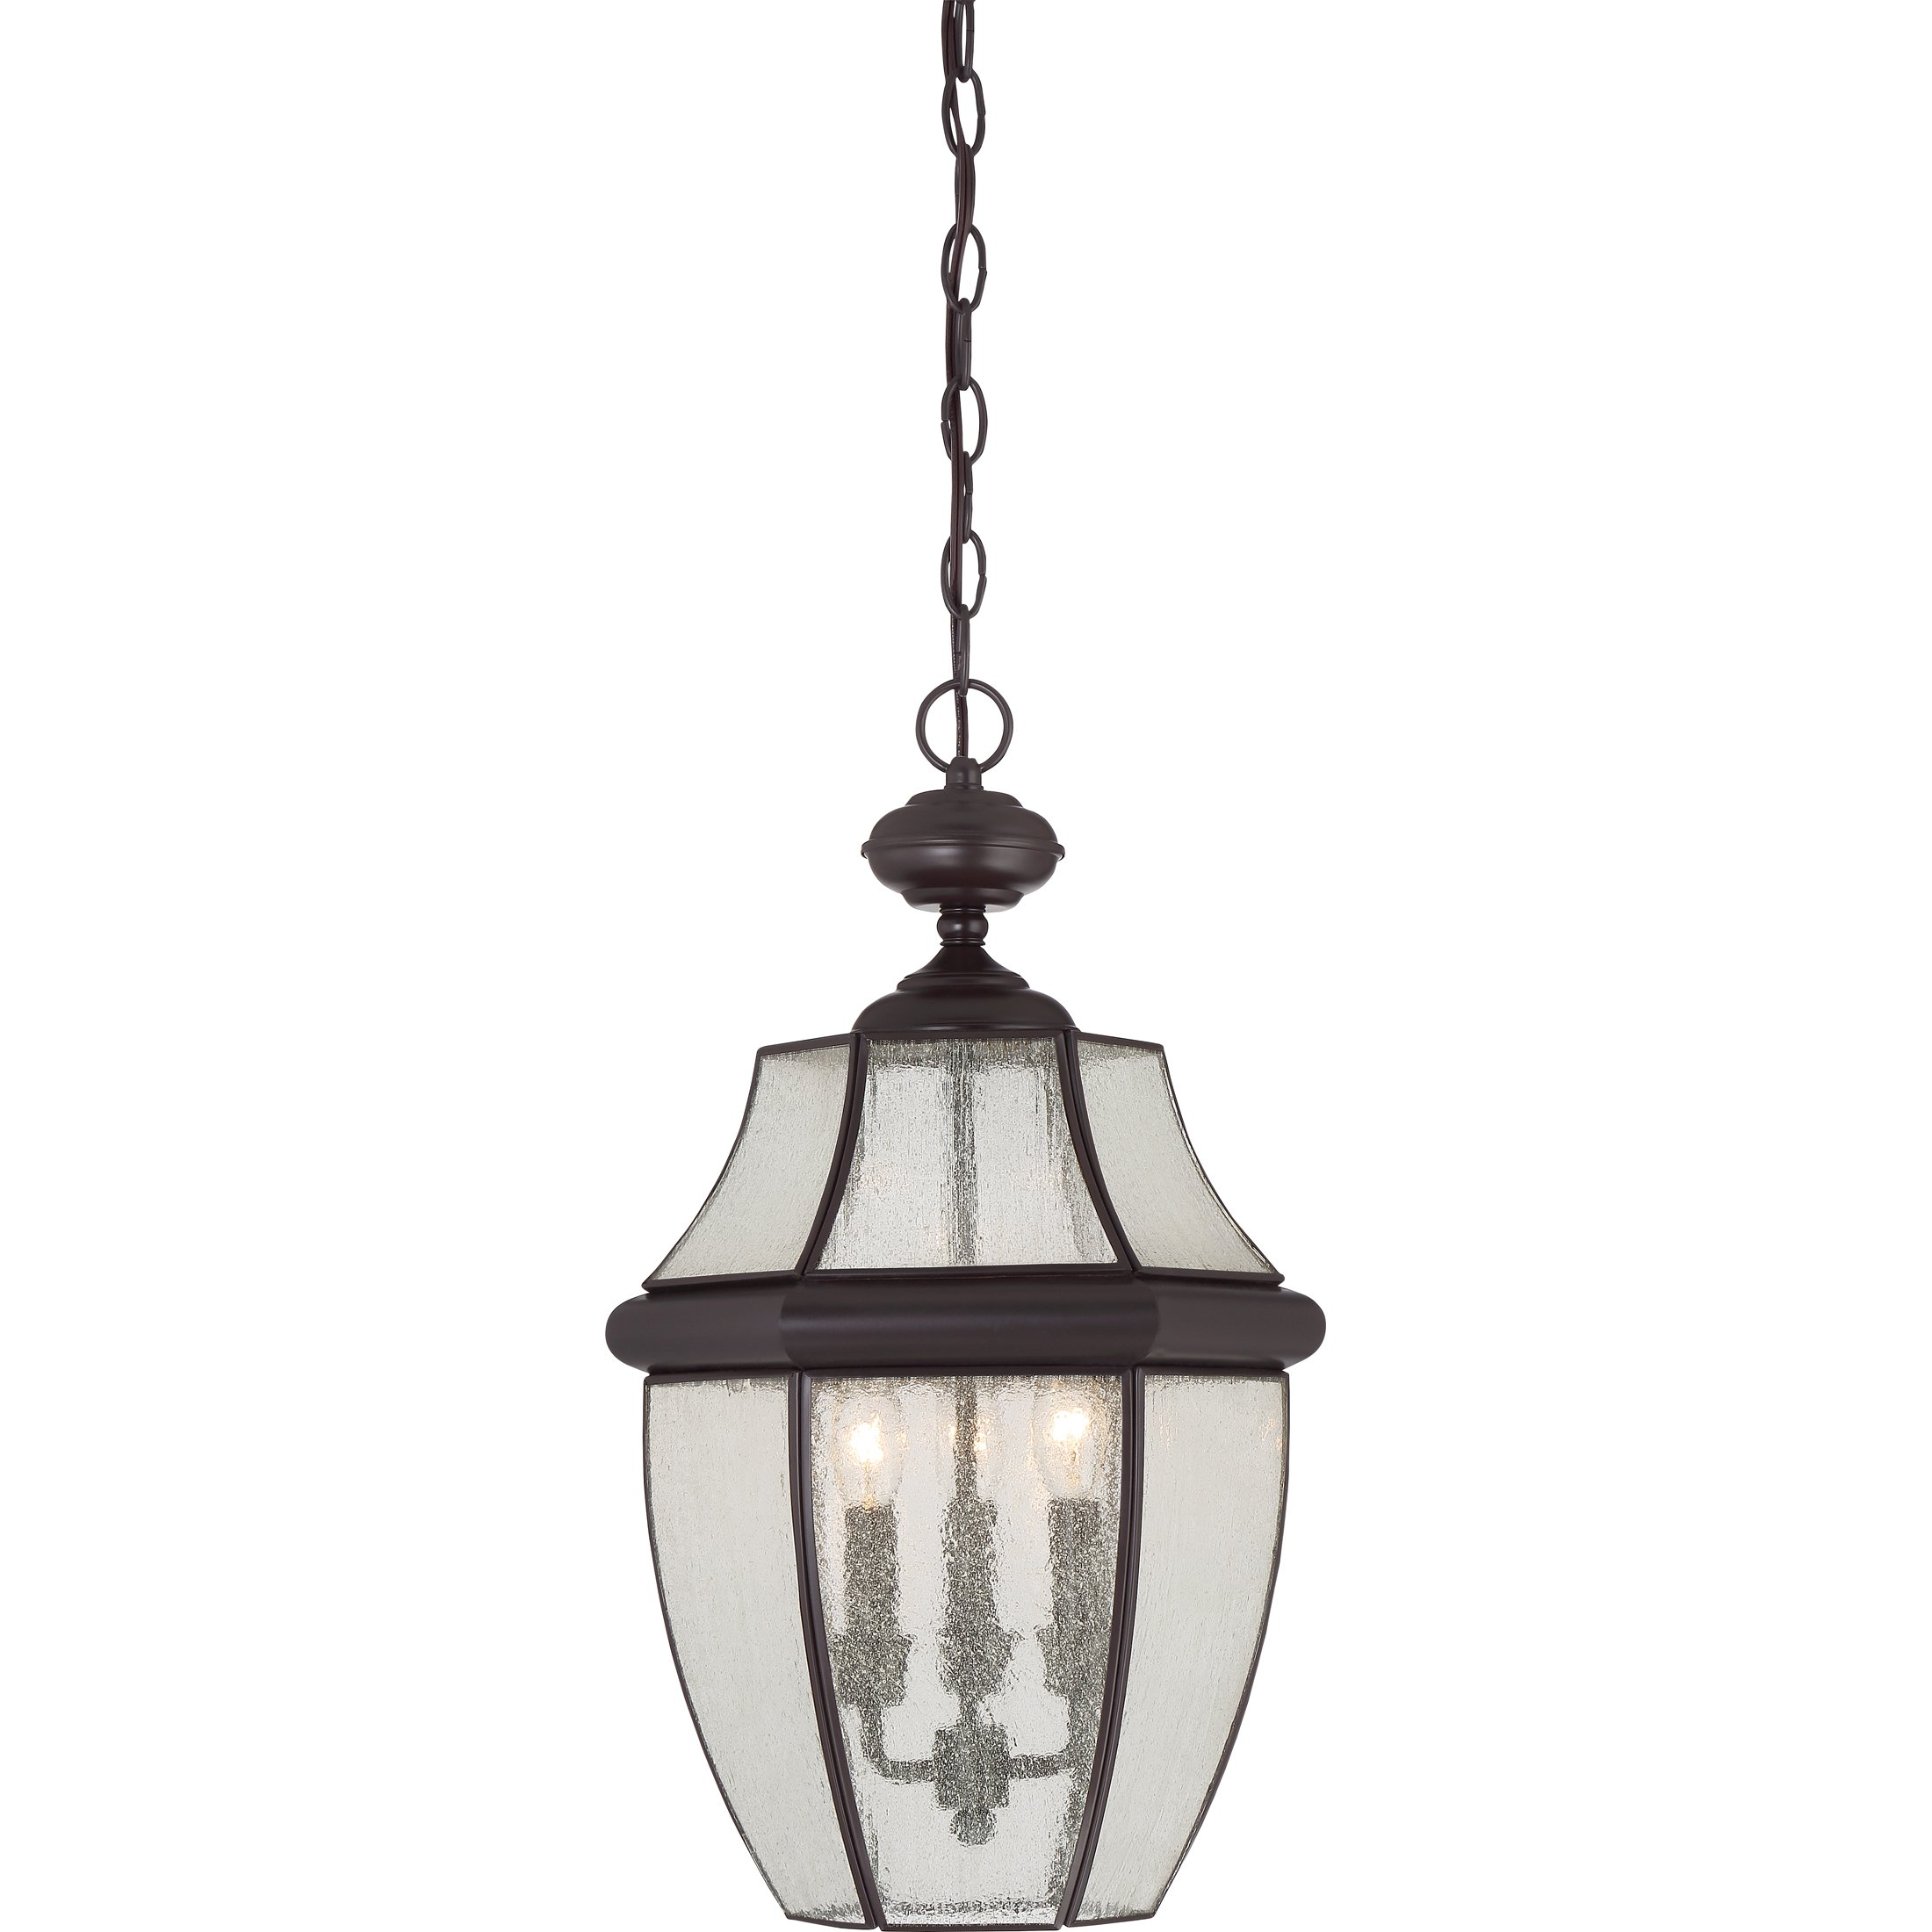 Quoizel NY1912Z 3-Light Newbury Outdoor Lantern in Medici Bronze by Quoizel